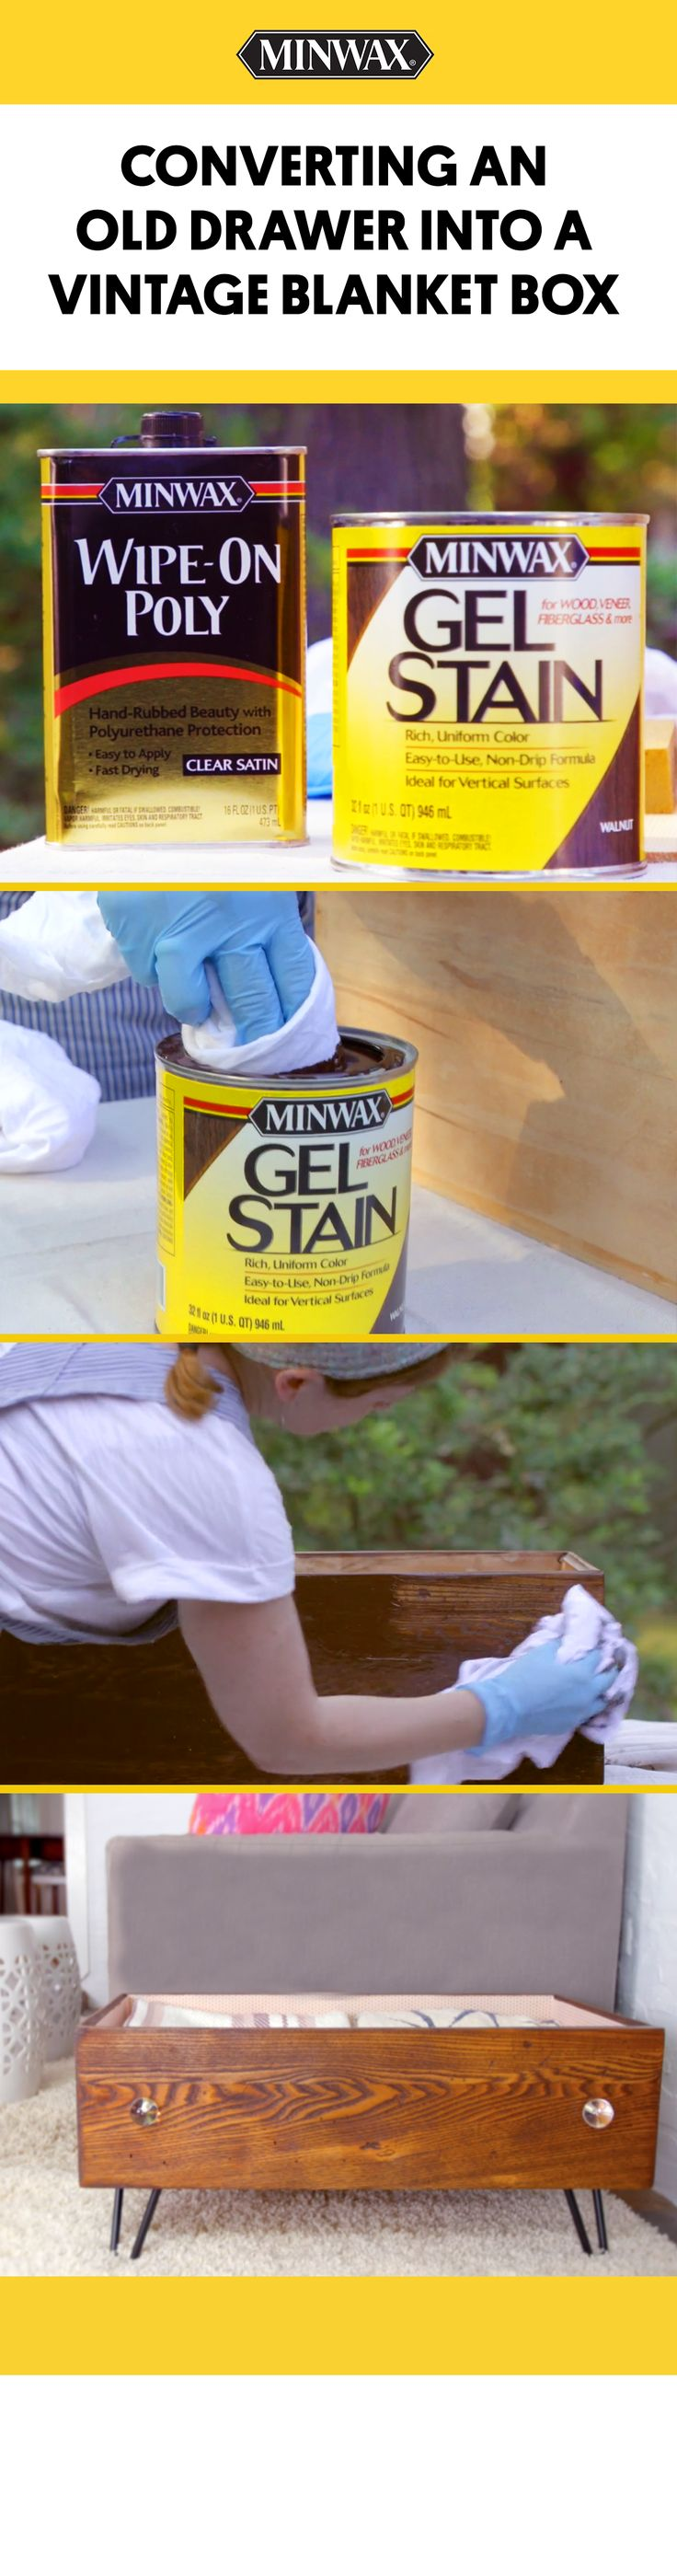 See how PureWow used Minwax® products to convert an old drawer into a vintage blanket box.